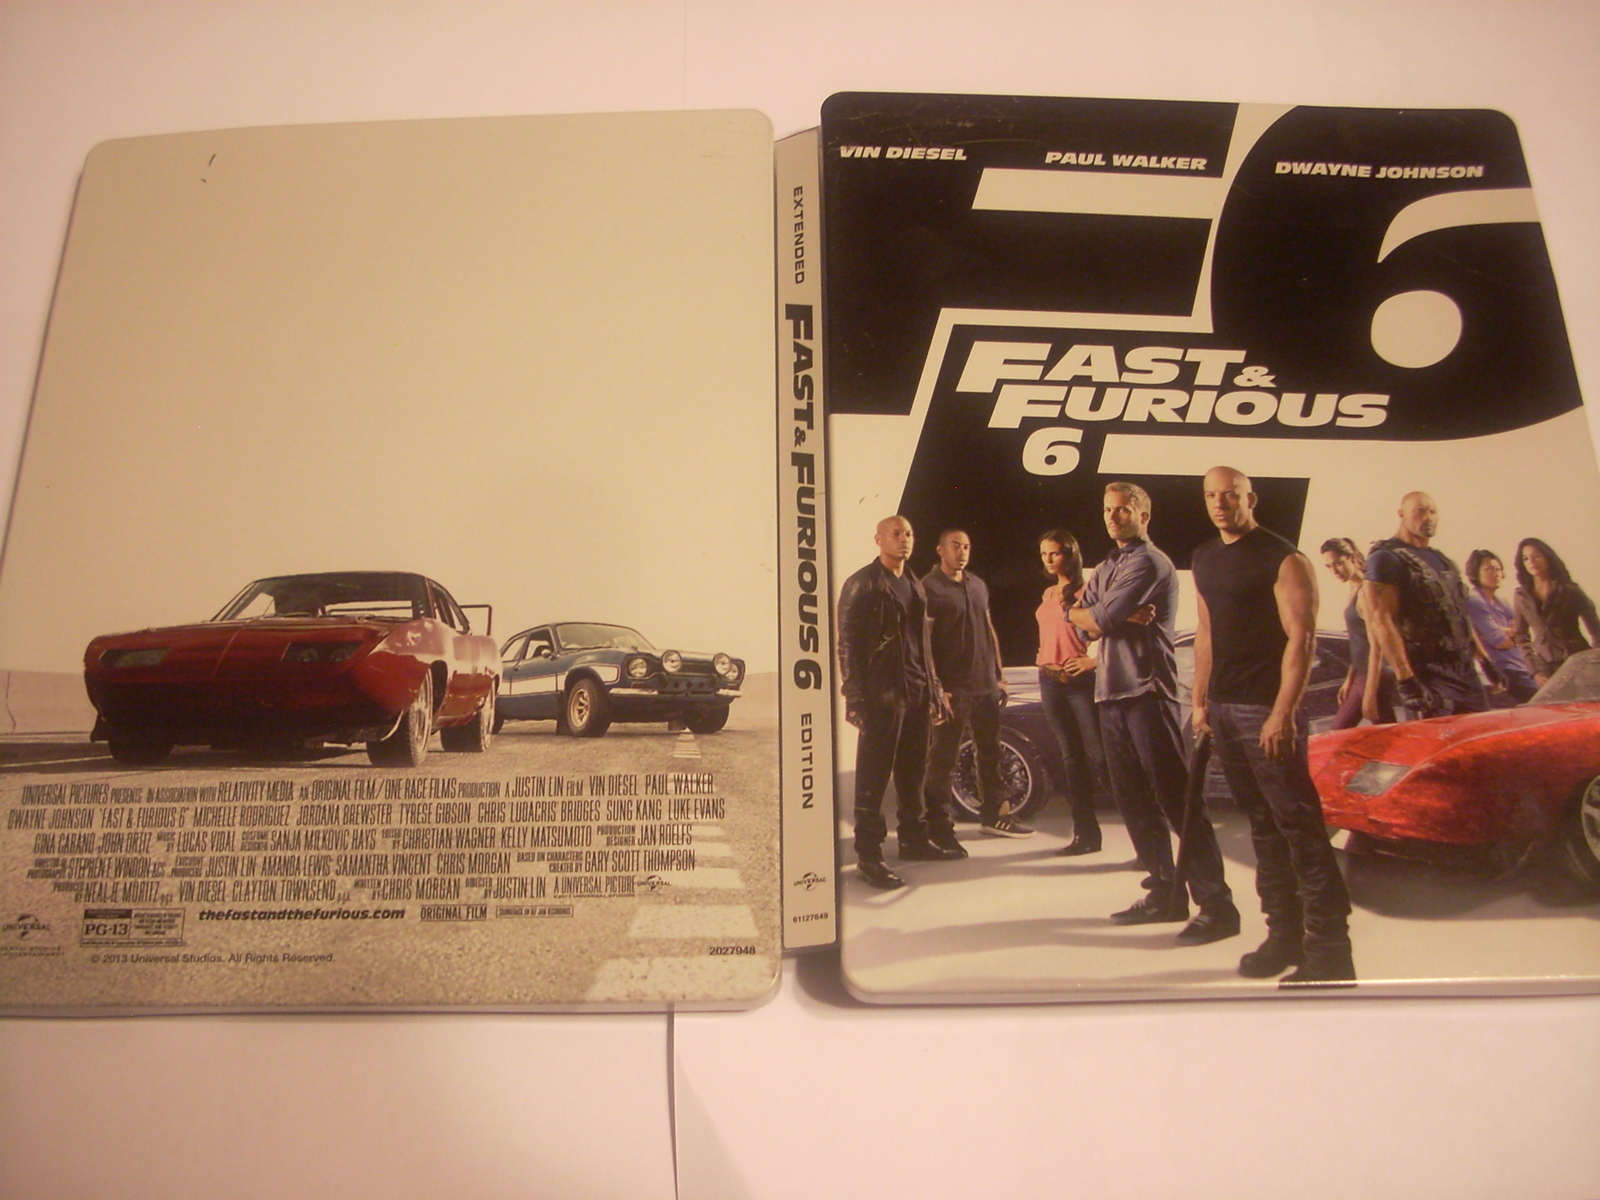 Fast & Furious 6 - DVD/Blu Ray Steelbook